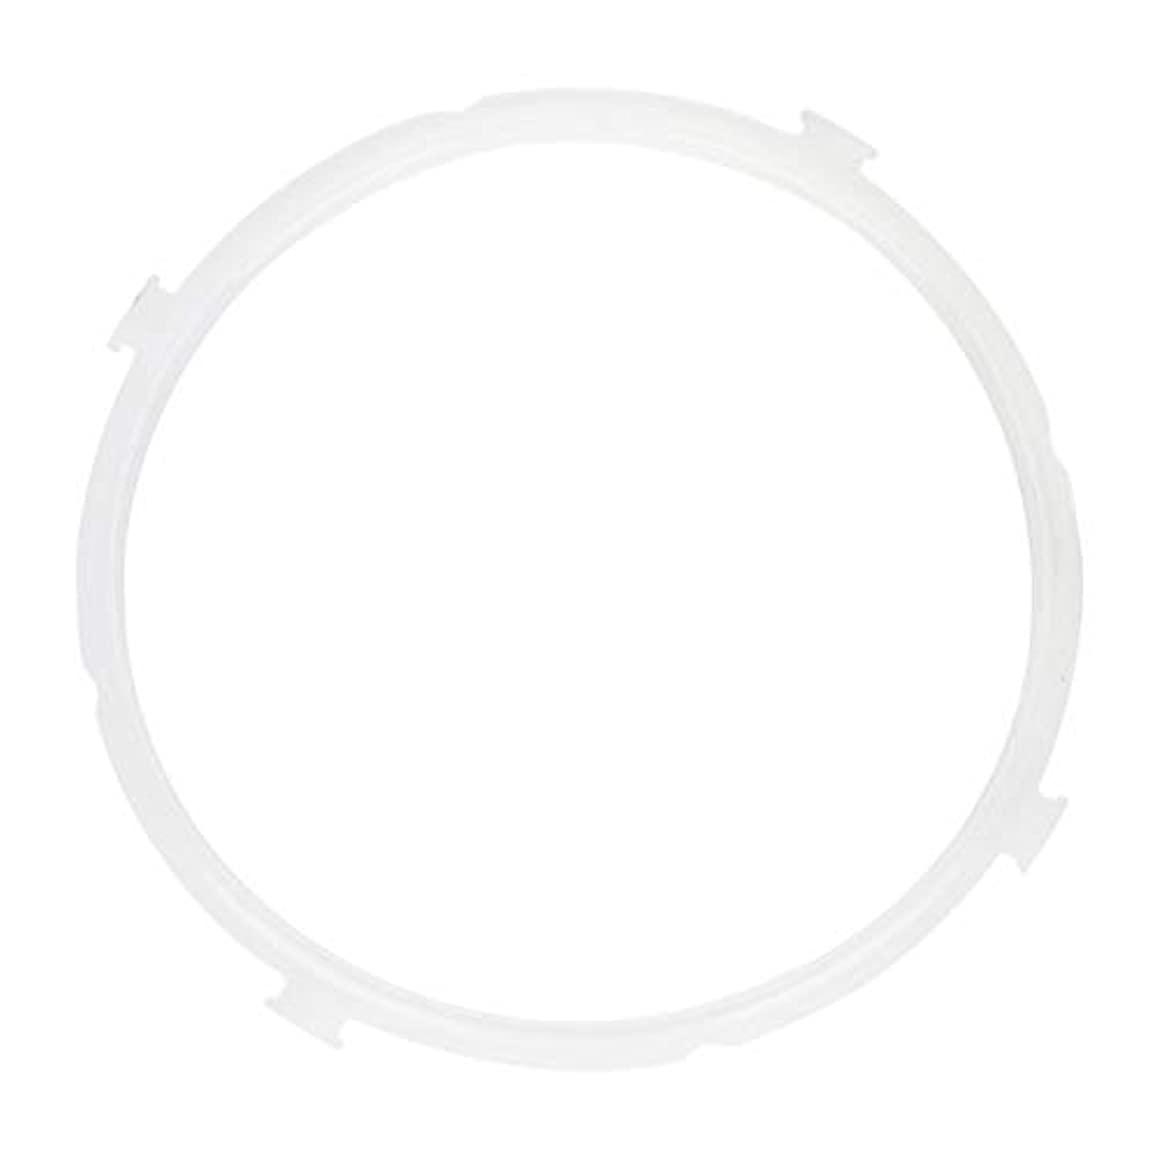 Tcplyn Premium Quality High Pressure Cooker Rubber Electric Pressure Cooker Sealing Ring for Midea - 5L-6L